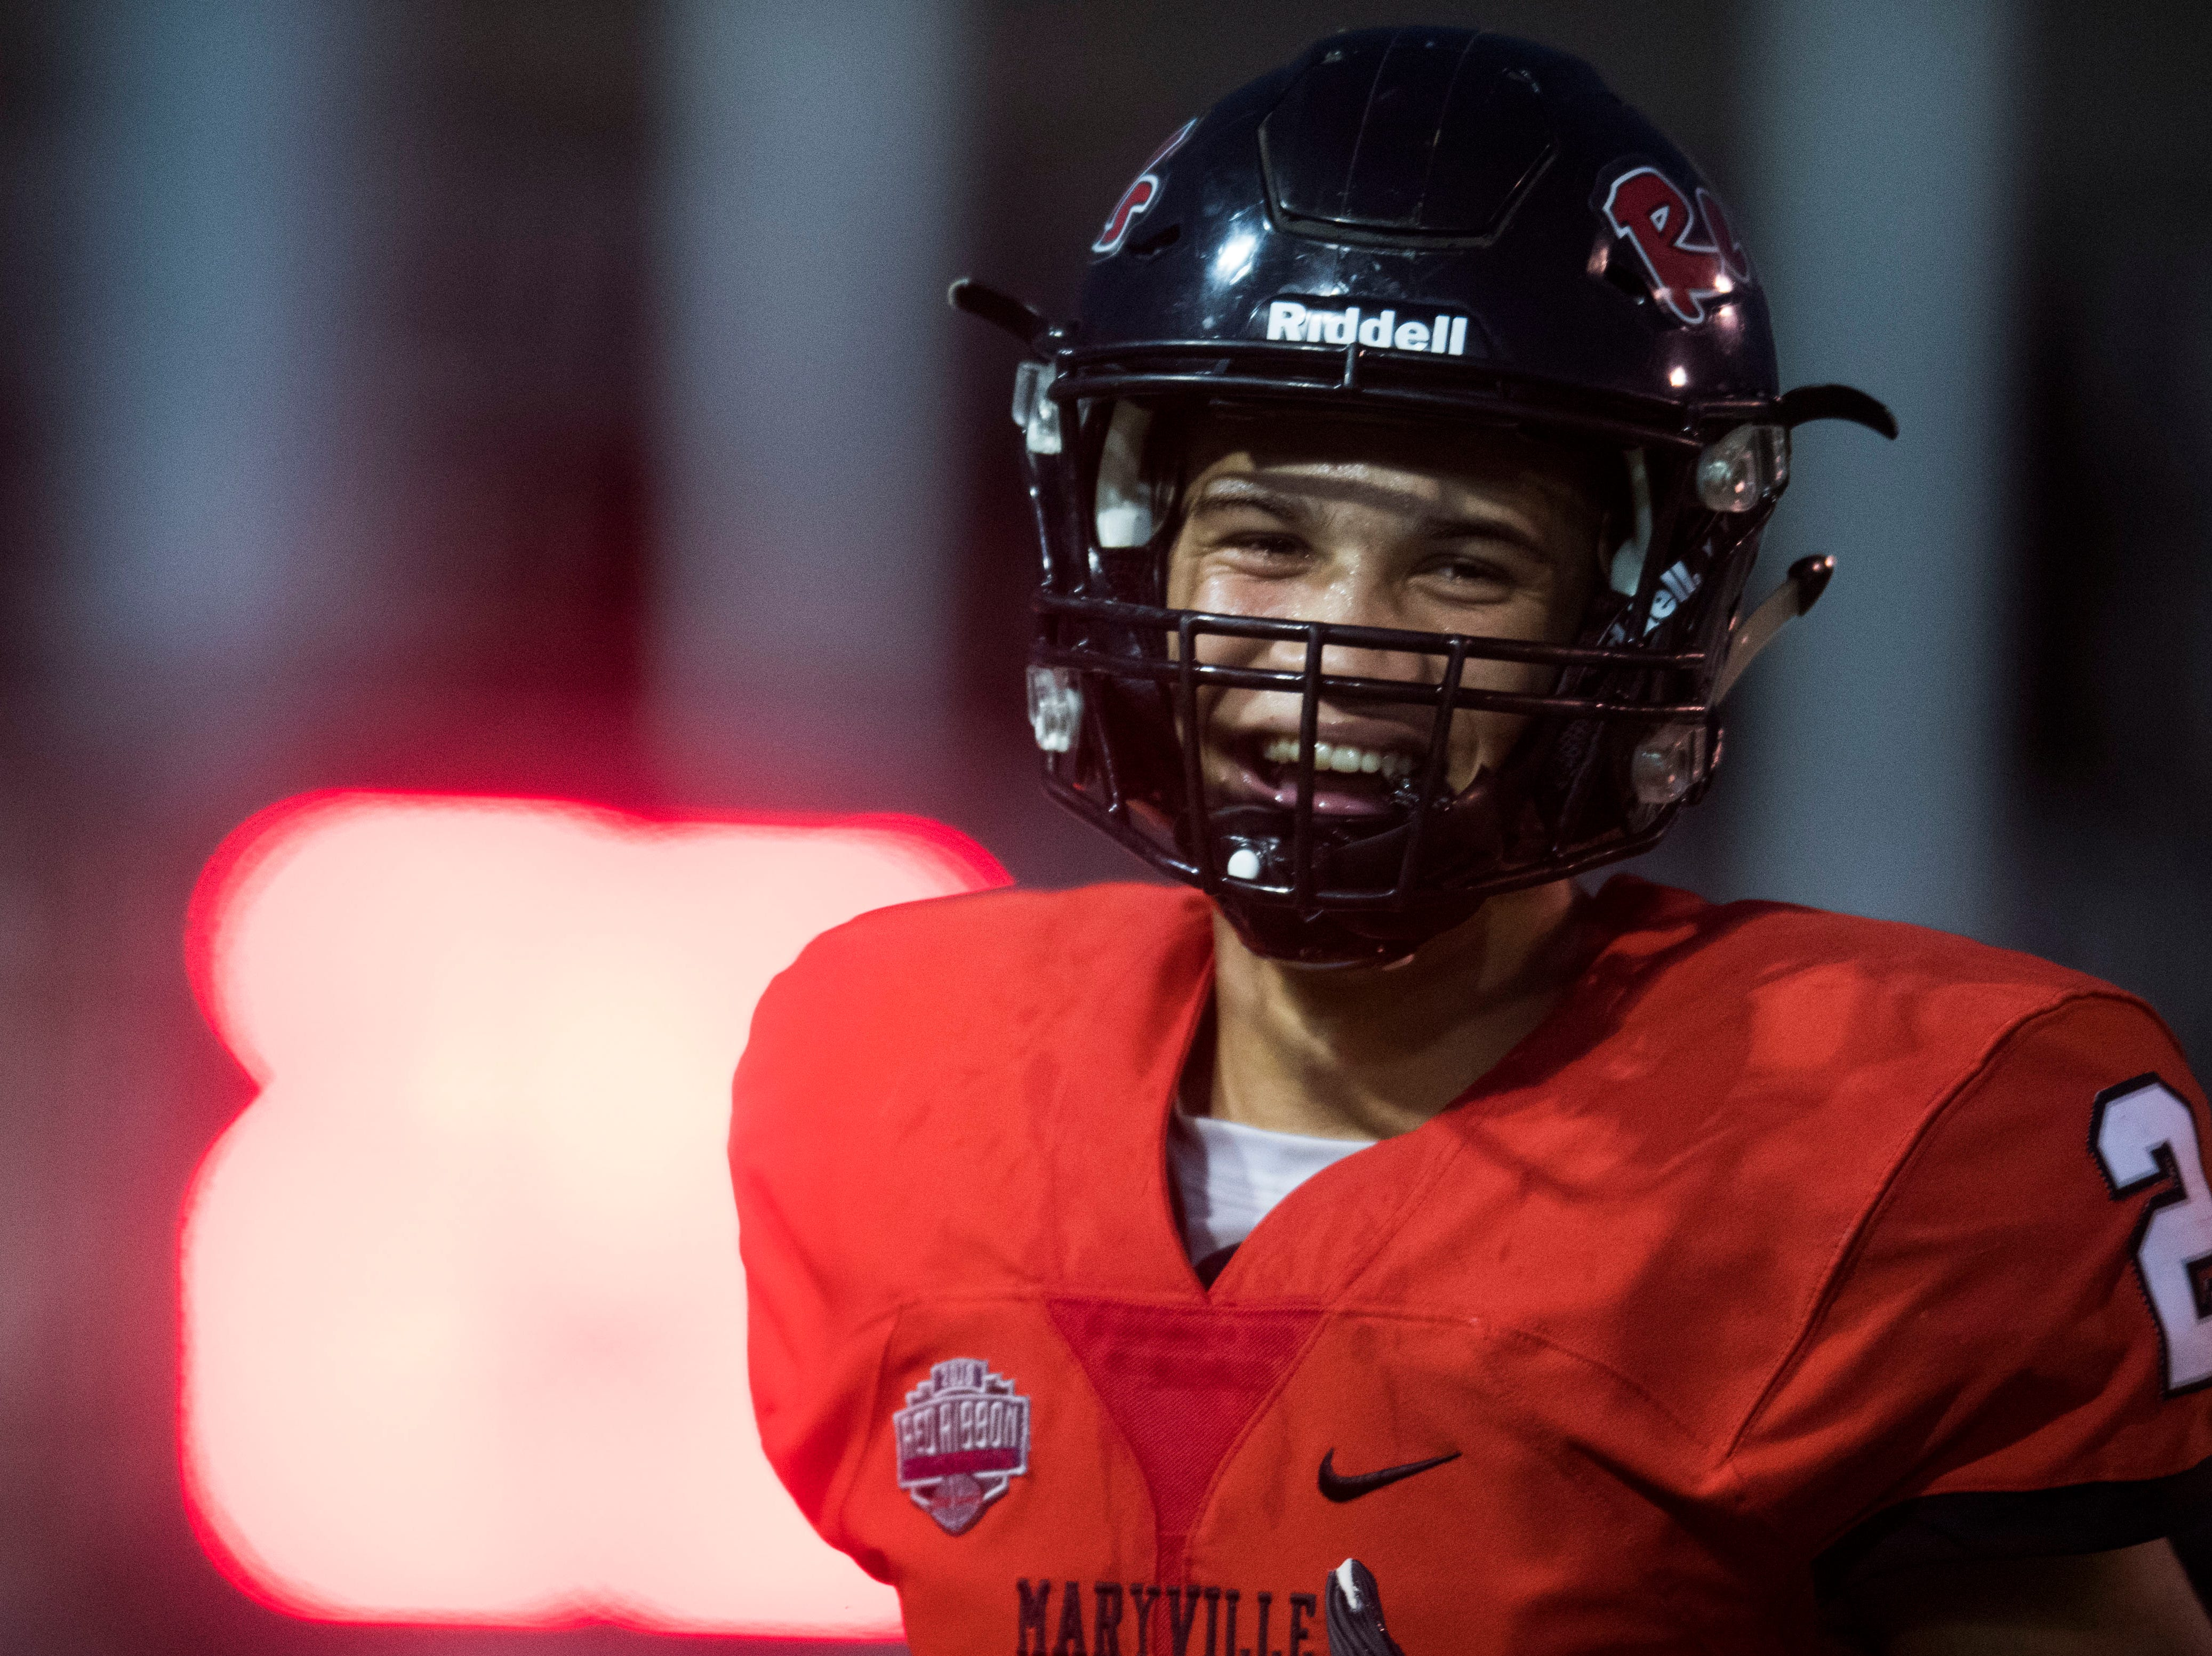 Maryville's Ashton Maples (2) celebrates a touchdown during a game between Cleveland and Maryville at Maryville Thursday, Oct. 4, 2018. Maryville defeated Cleveland 42-7.